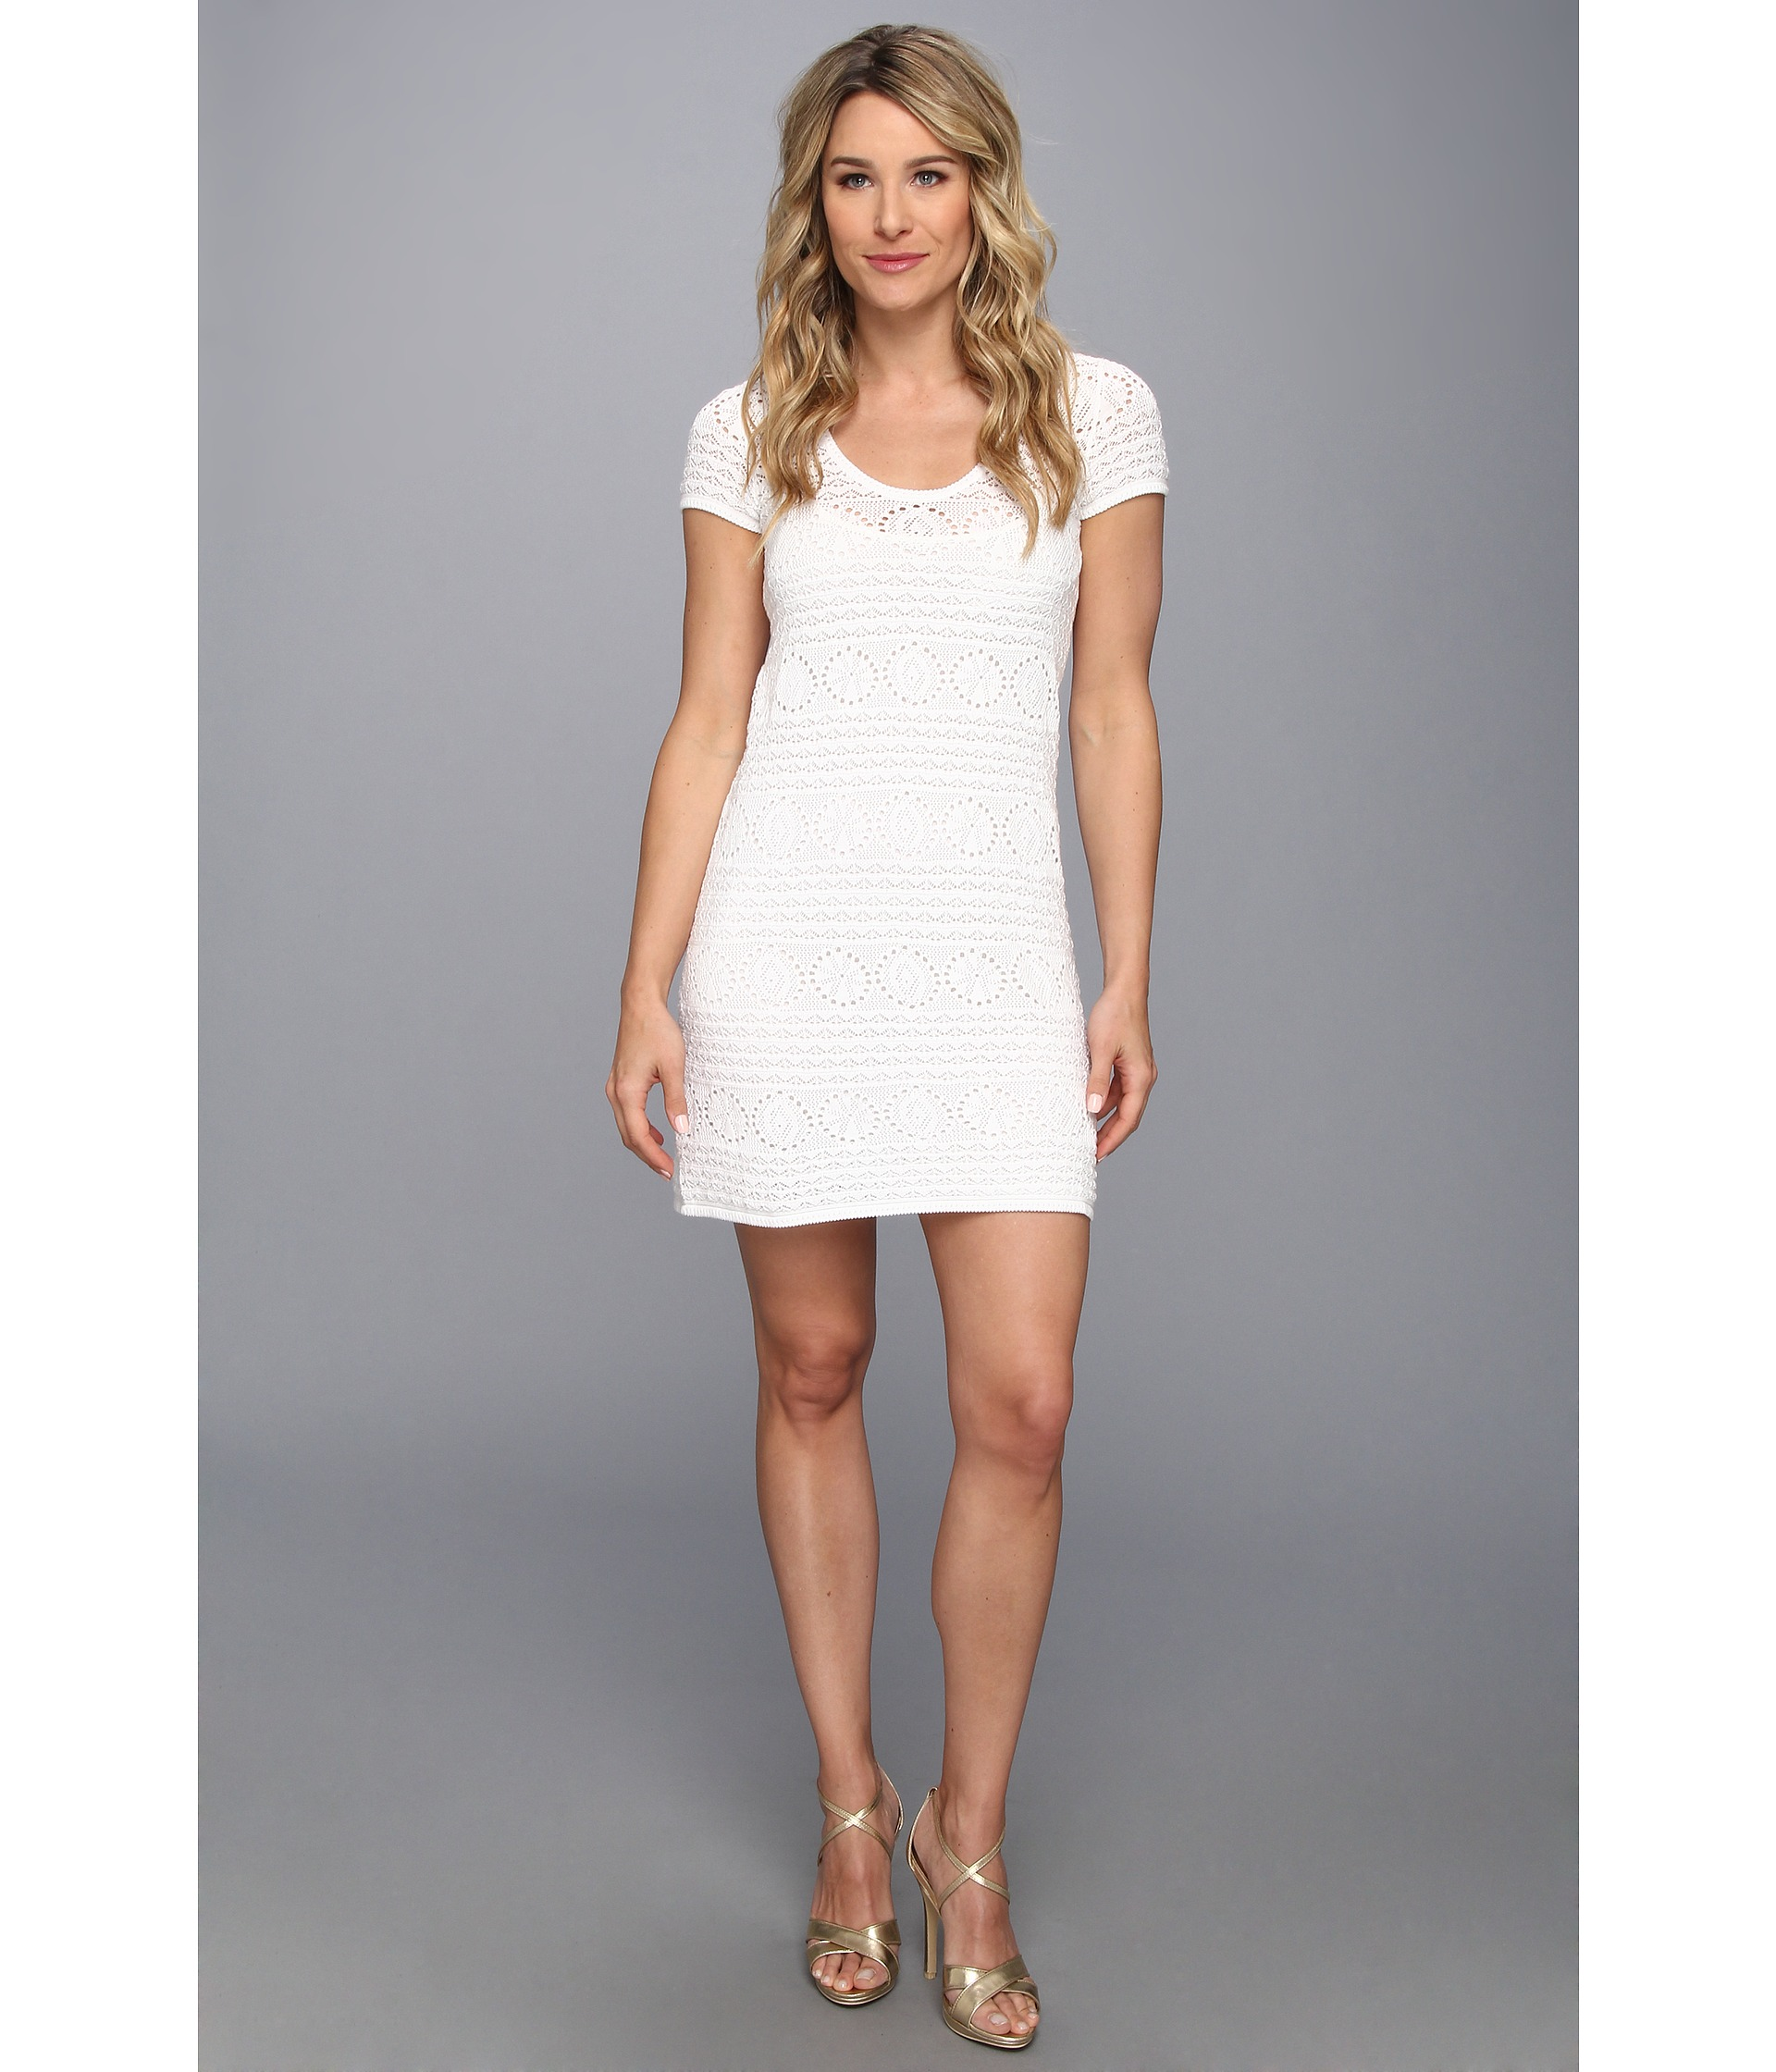 White Lilly Pulitzer Dresses On Sale Lilly Pulitzer Dresses On Sale